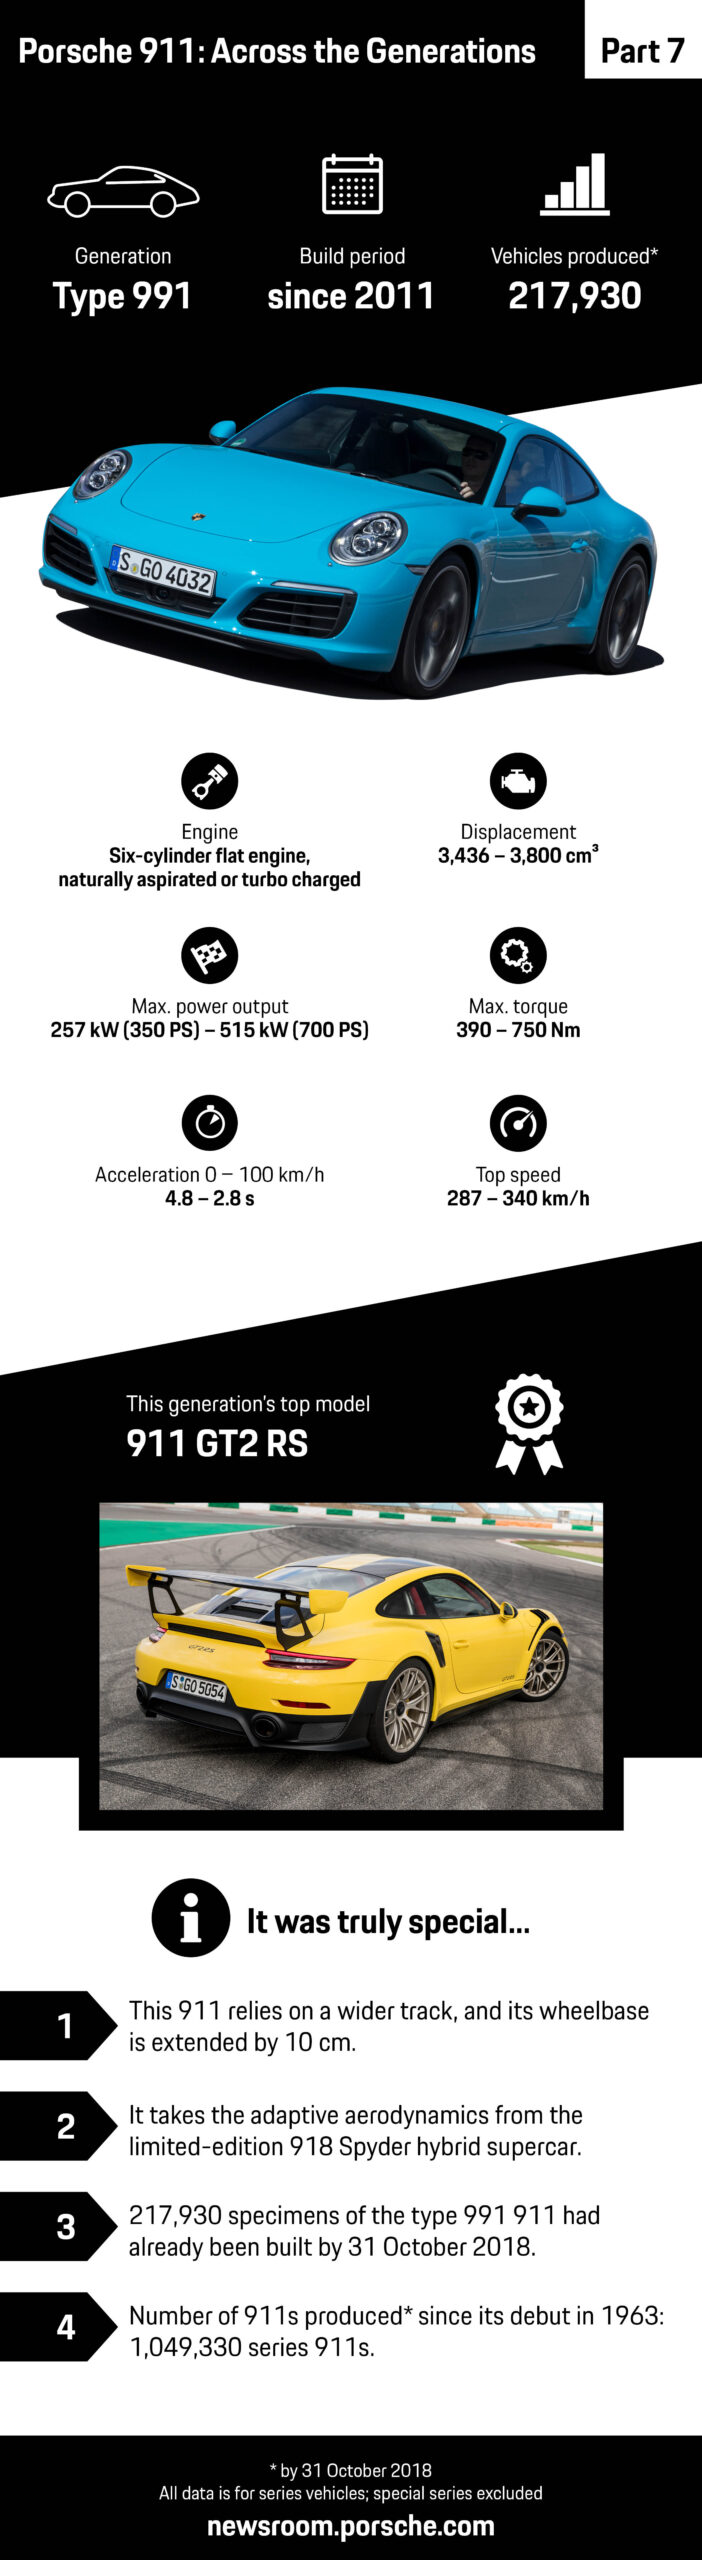 The 991 The 911 Passes One Million